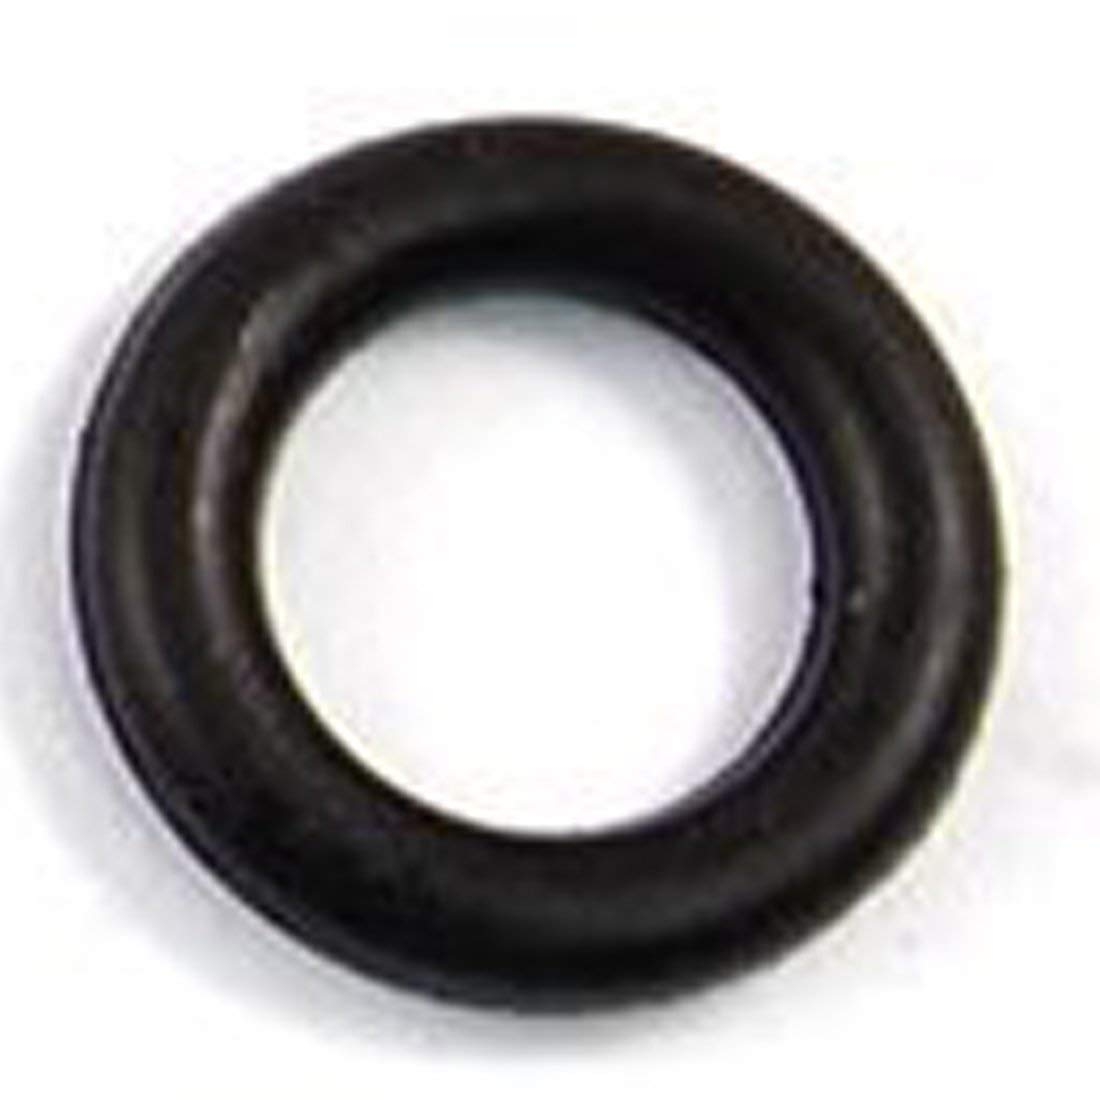 Yevison 50 pieces black Nitrile rubber O Ring Seals Washers 12 mm x 2,5 mm x 7 mm Durable and Useful by Yevison